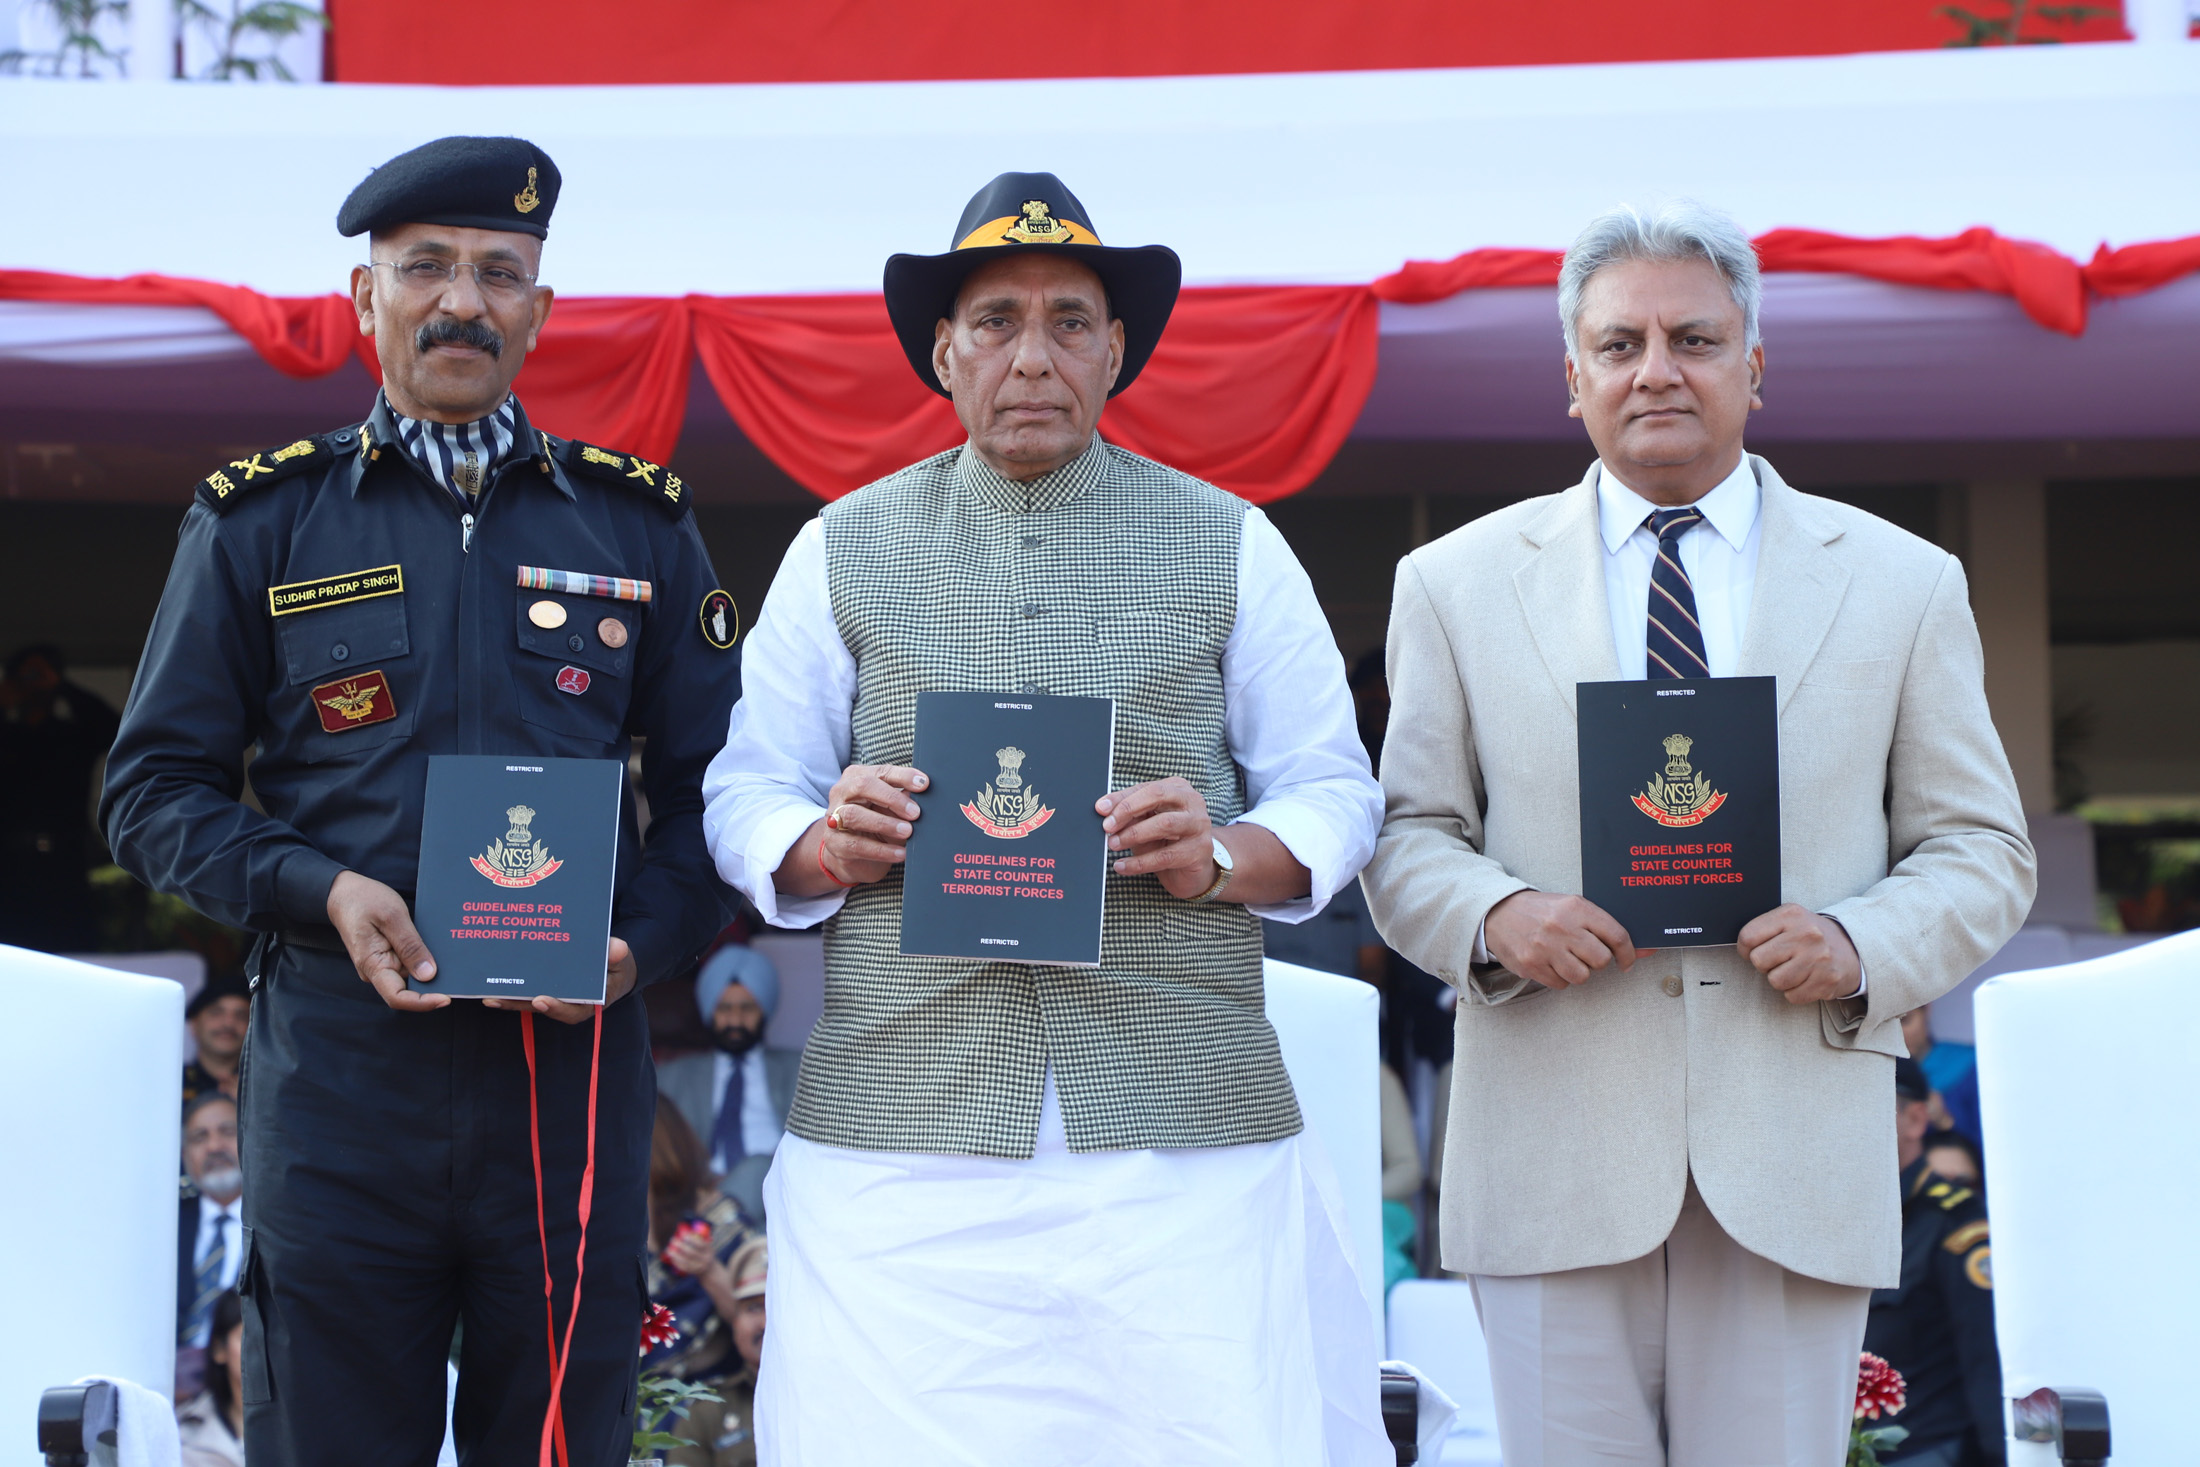 The Union Home Minister, Shri Rajnath Singh releasing a compendium, during the Closing Ceremony of the 8th All India Police Commando Competition, at Manesar, Gurugram, in Haryana on January 20, 2018.  The Director General, NSG, Shri Sudhir Pratap Singh and the Director, IB, Shri Rajiv Jain are also seen.